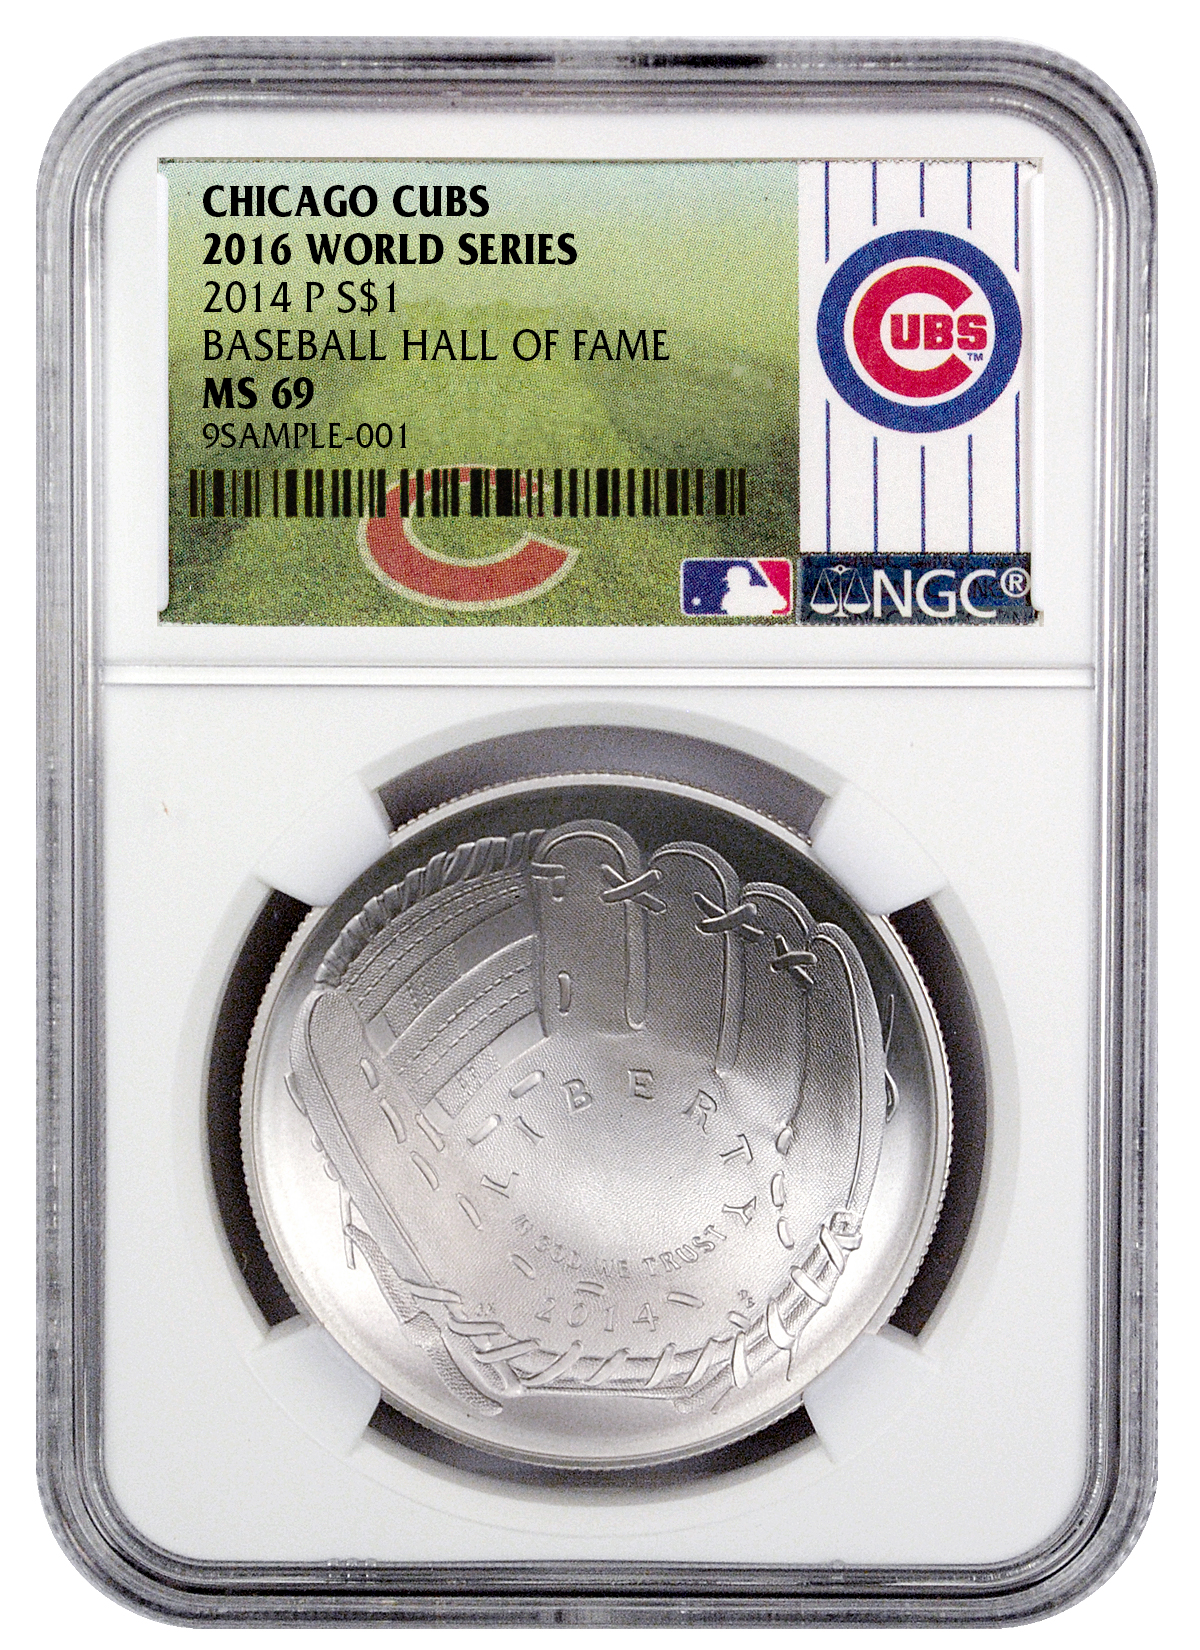 2014 P Baseball Hall Of Fame Commemorative Silver Dollar